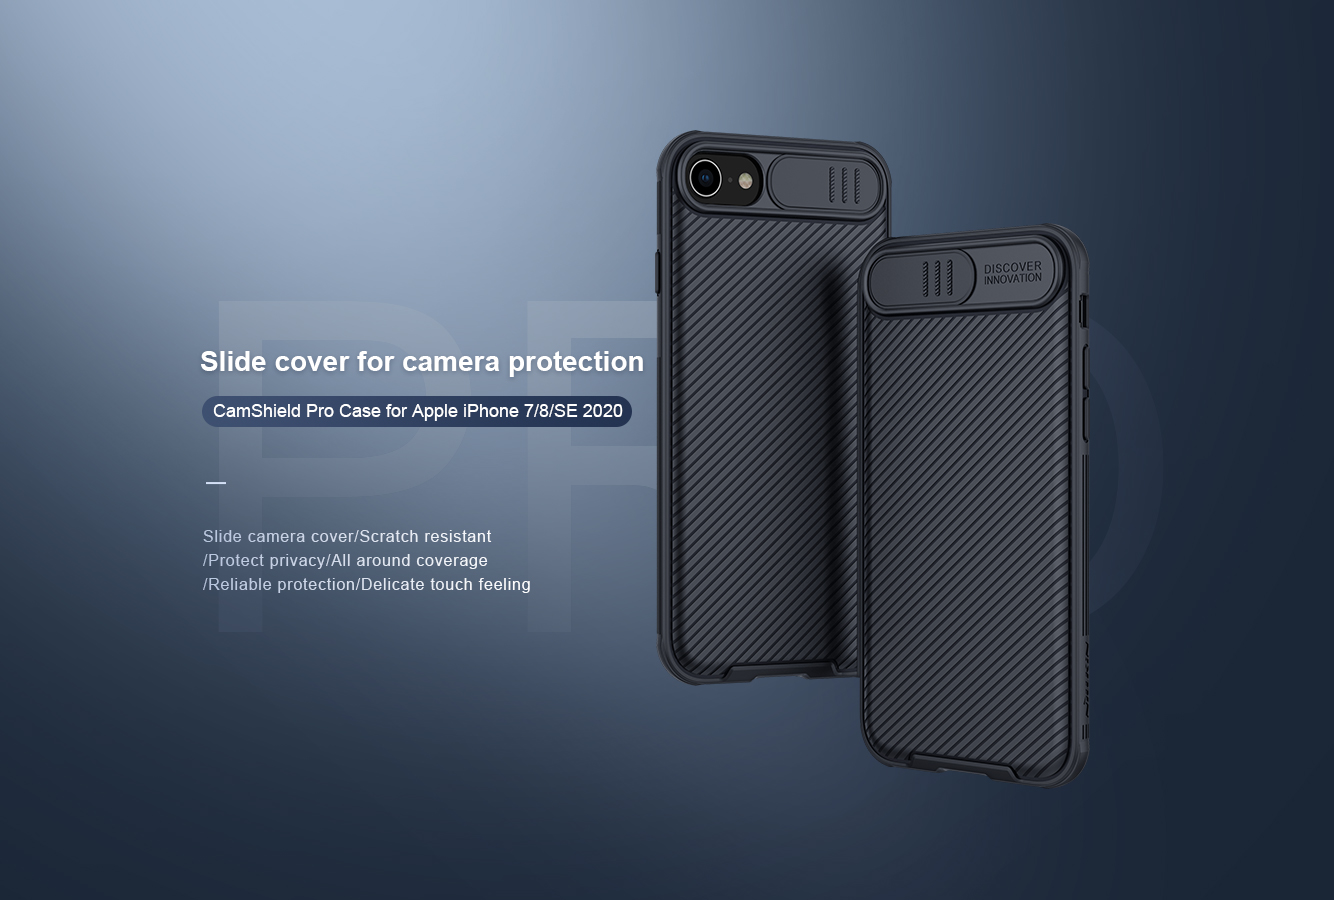 CamShield_Cover_Case_for_Apple_iPhone_SE_2020-01.jpg